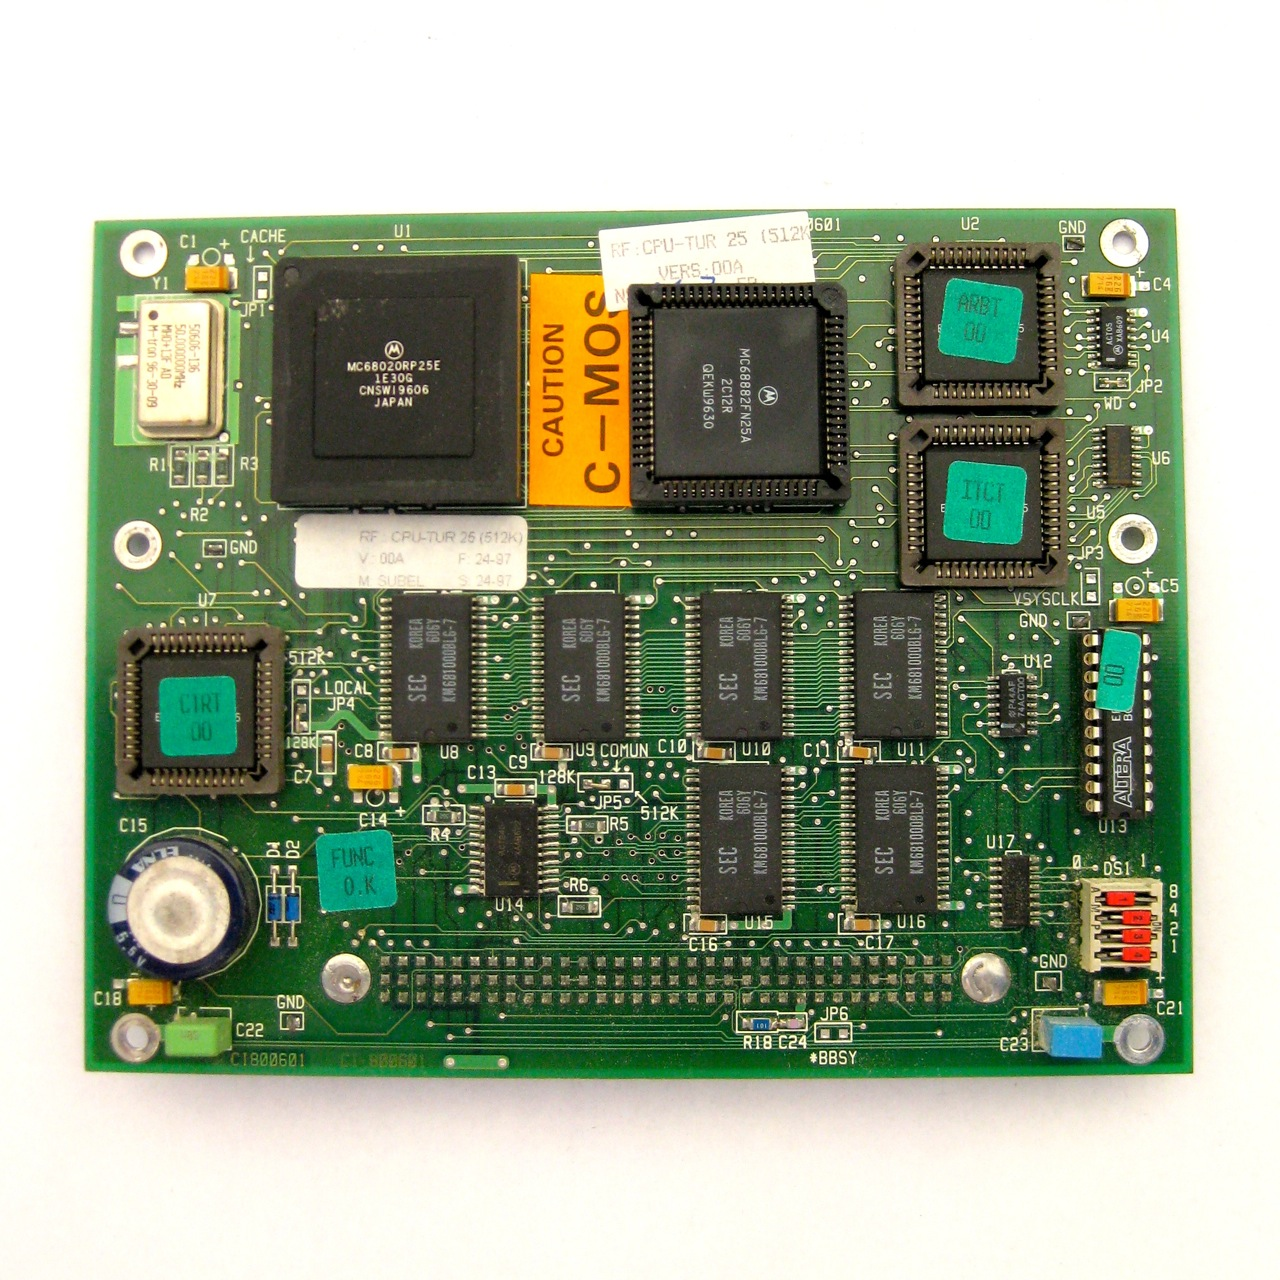 Fagor CPU-TUR 25 (512K) CPU turbo board